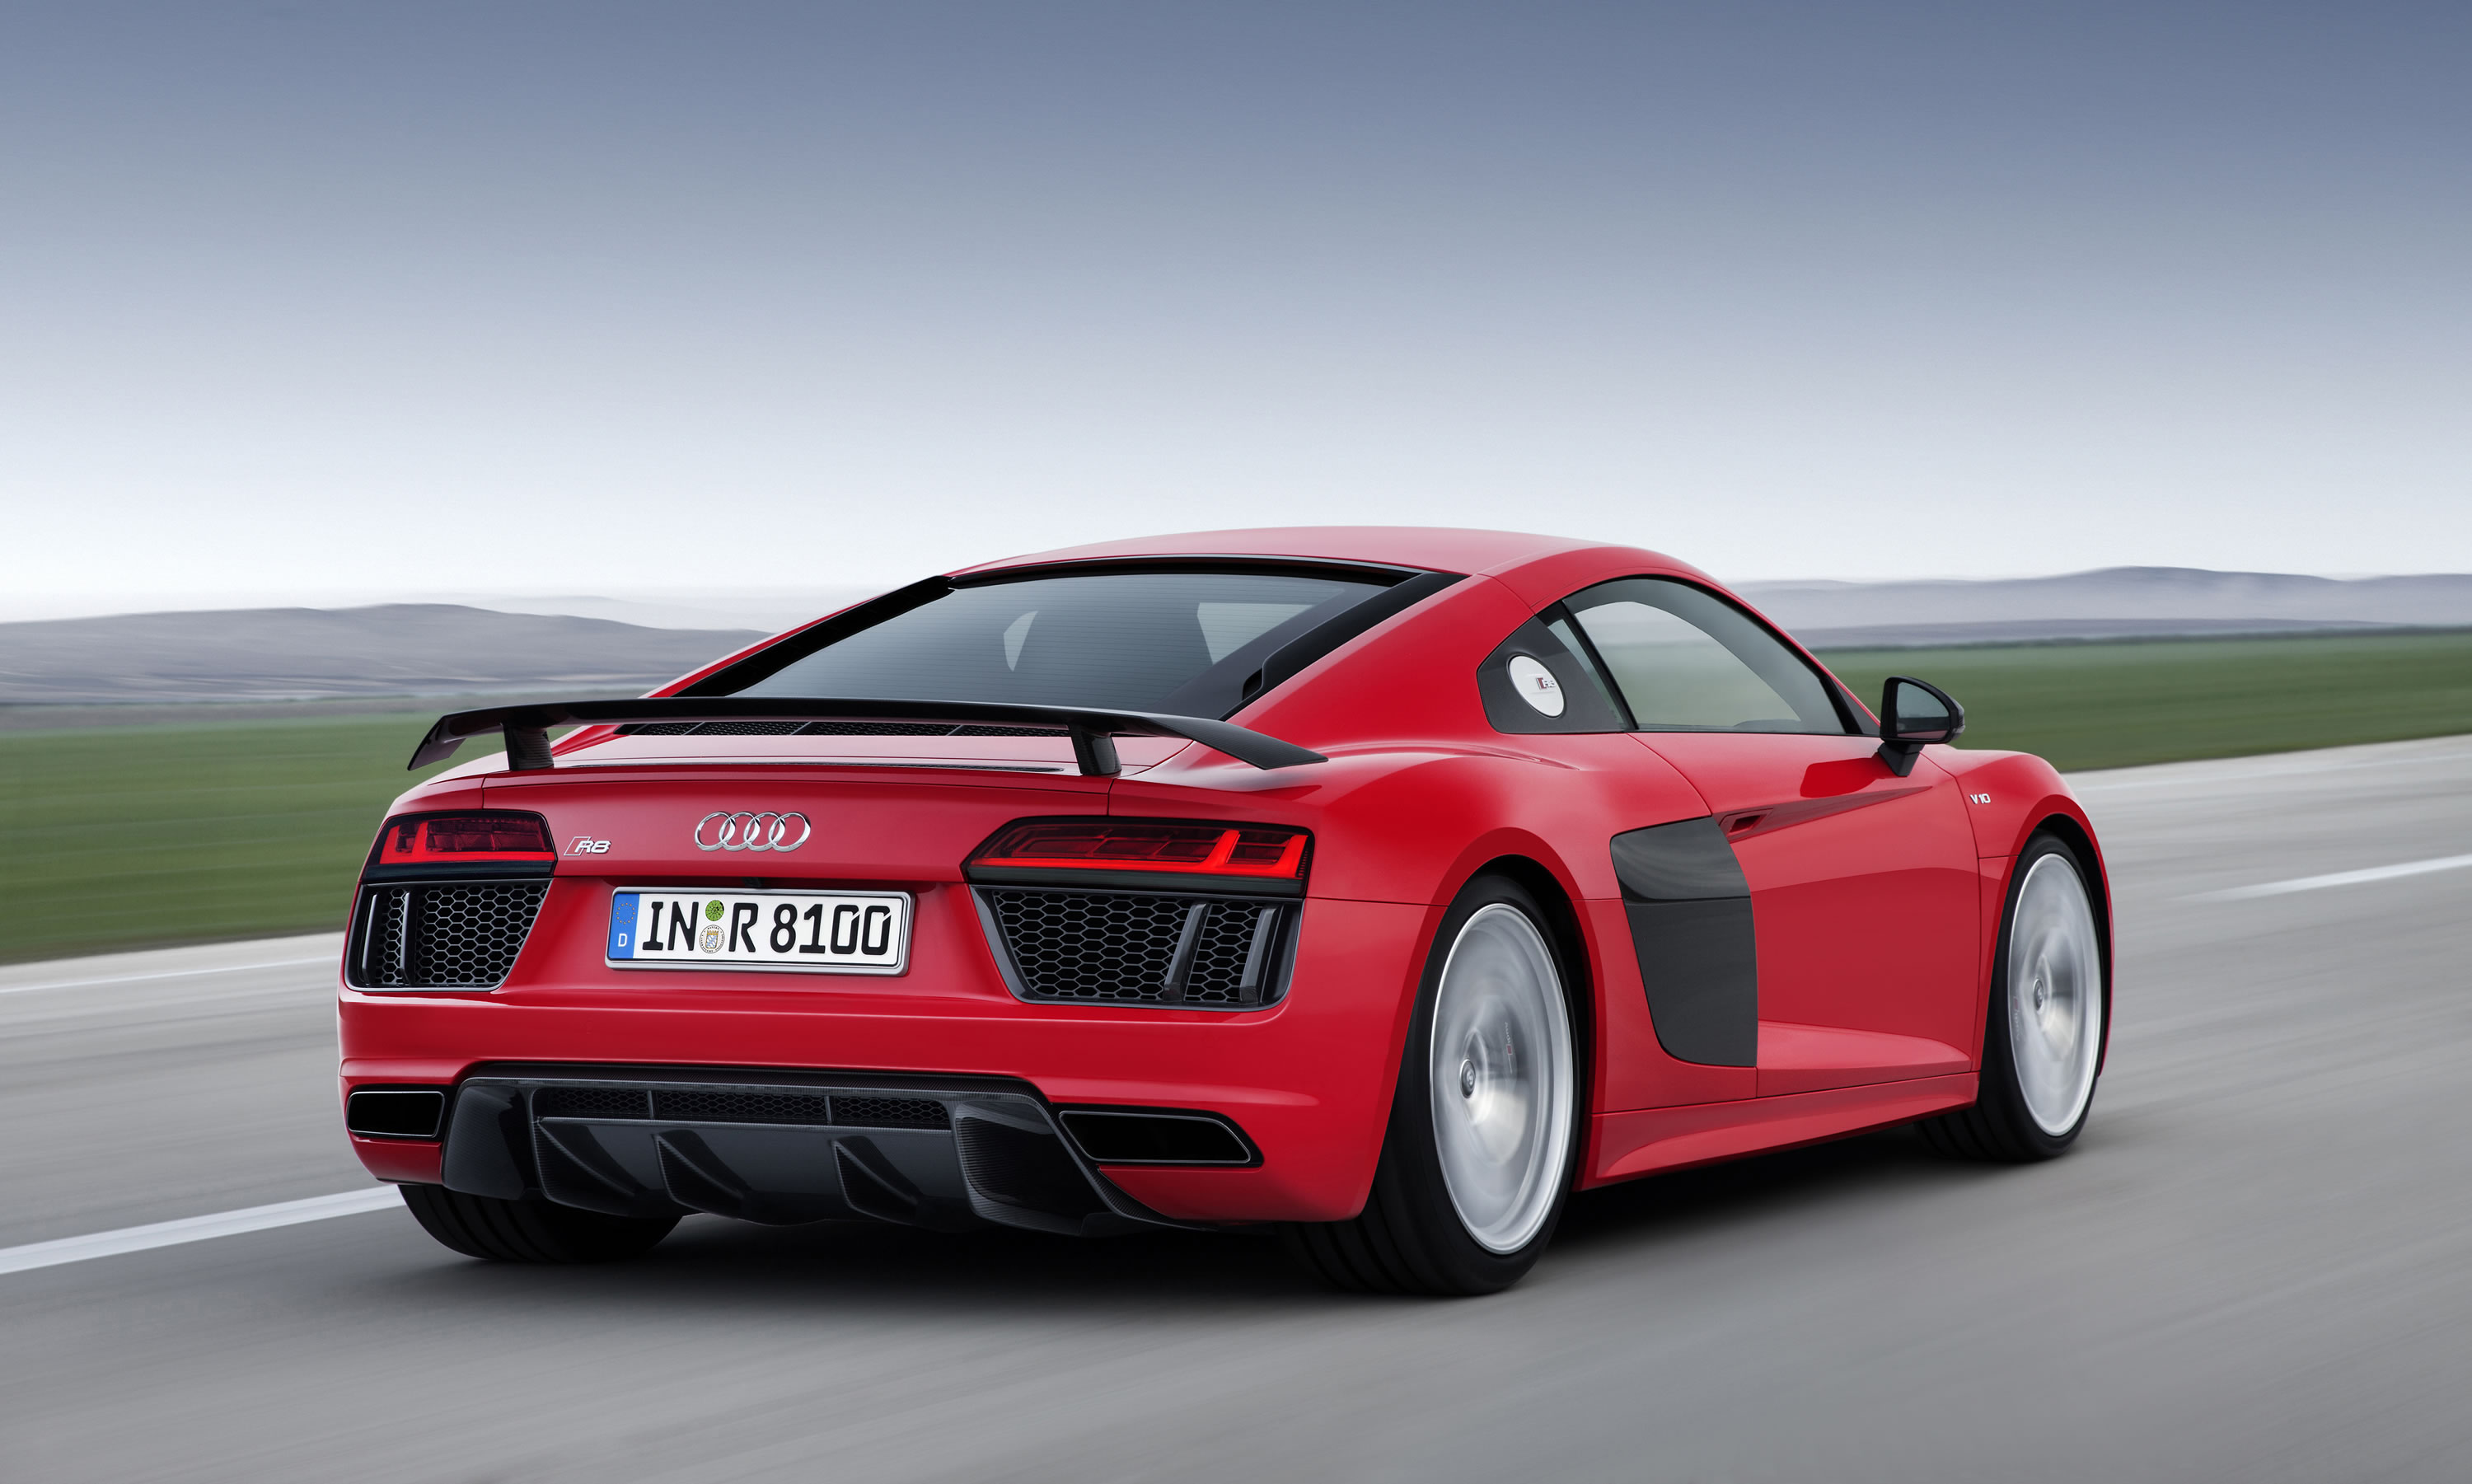 Great The Design Of The 2016 R8 V10 Plus Reflects The Powerful Sporty Character  Of The R8